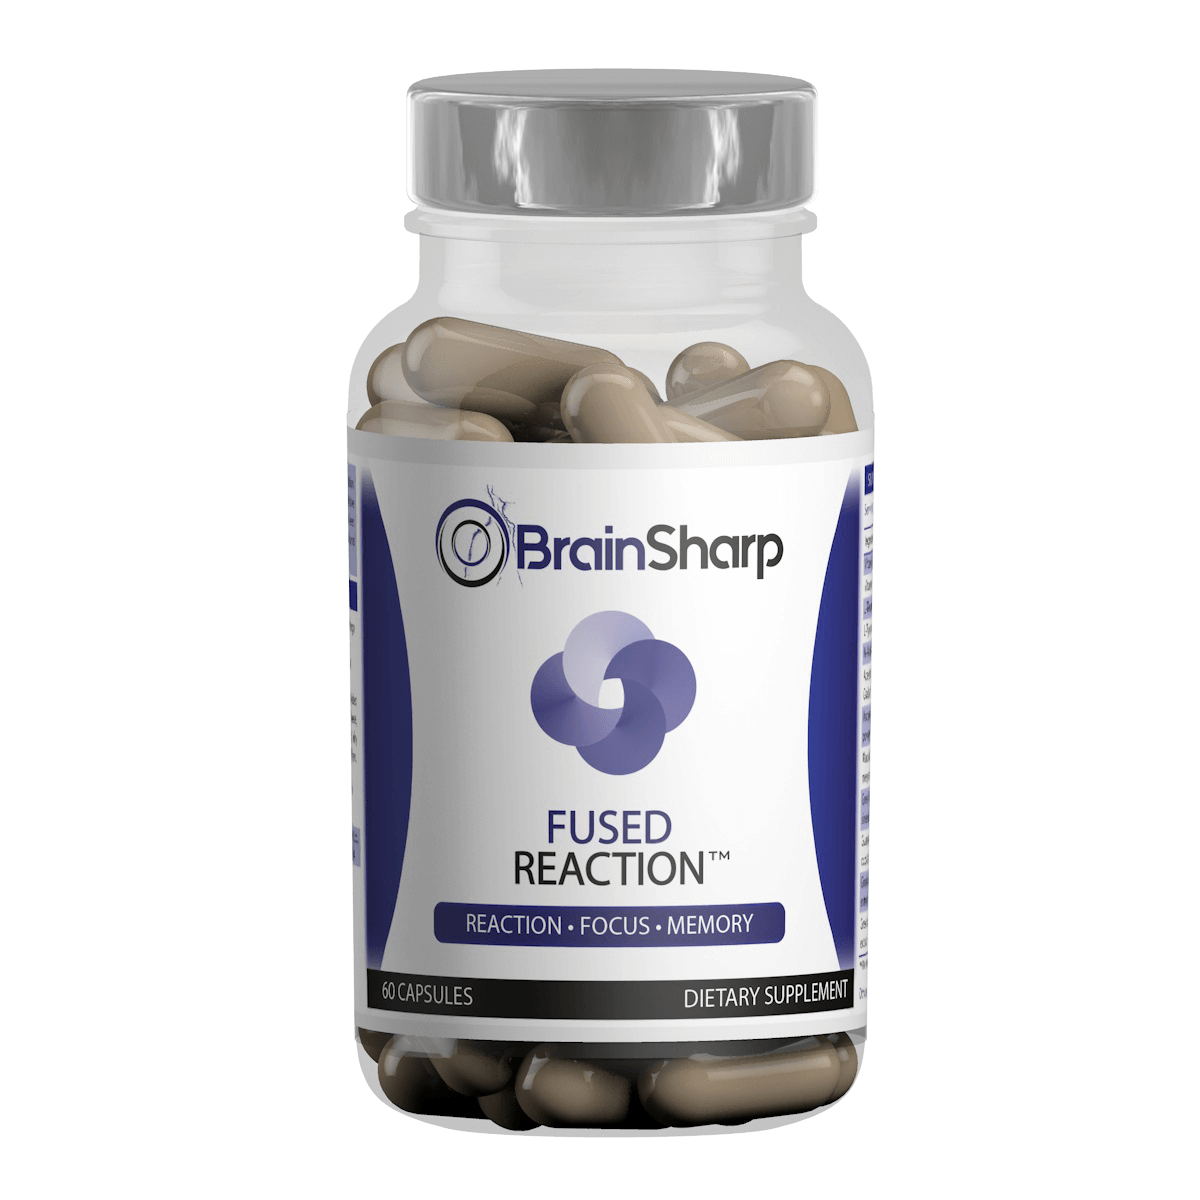 BrainSharp Supplement For Focus, Memory & Brain Health